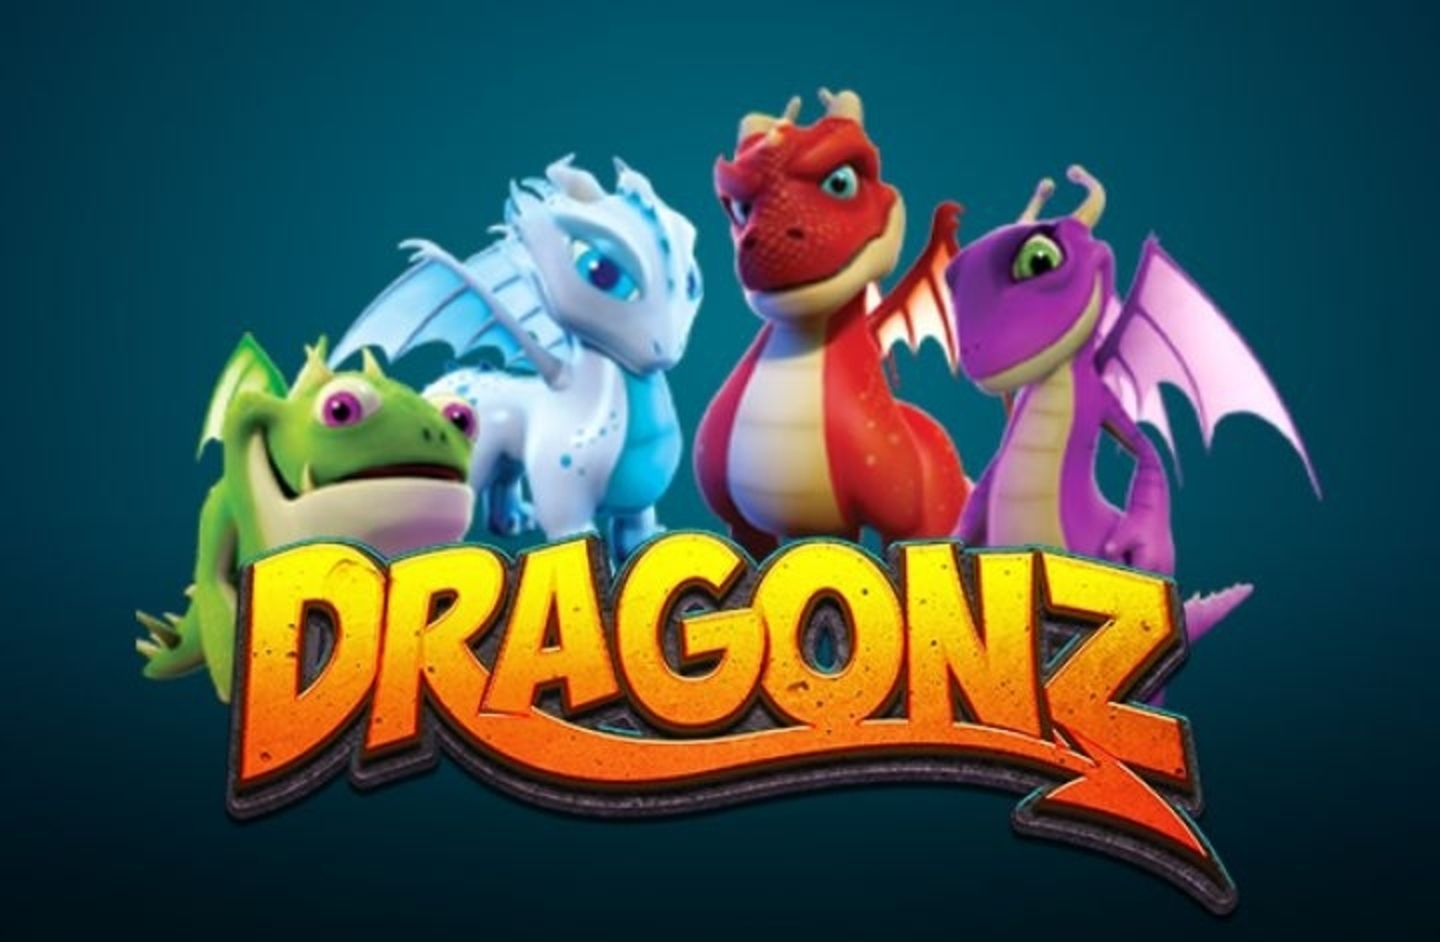 The Dragonz Online Slot Demo Game by Microgaming